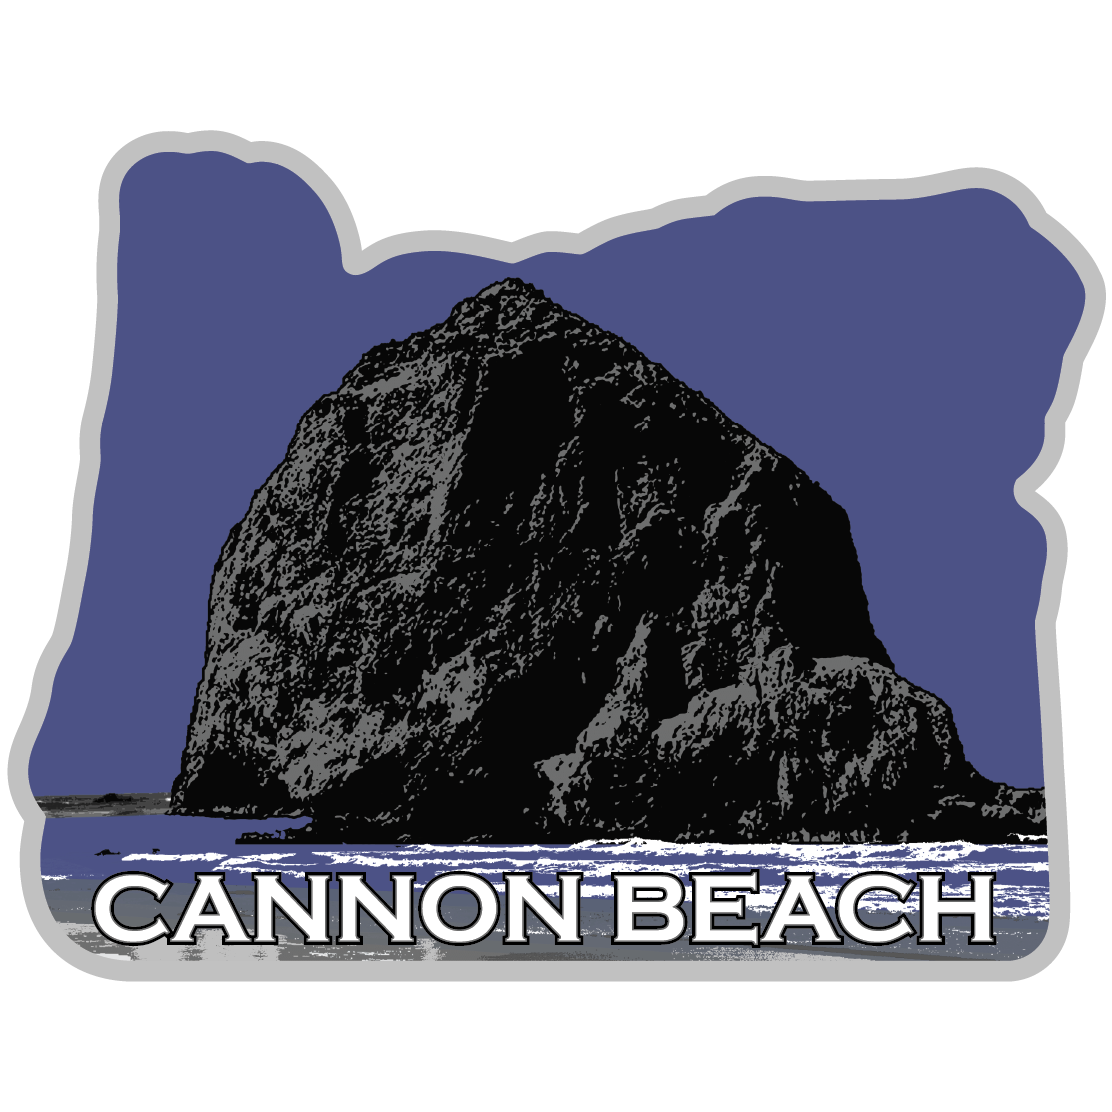 Cannon Beach Oregon Sticker - The Heart Sticker Company